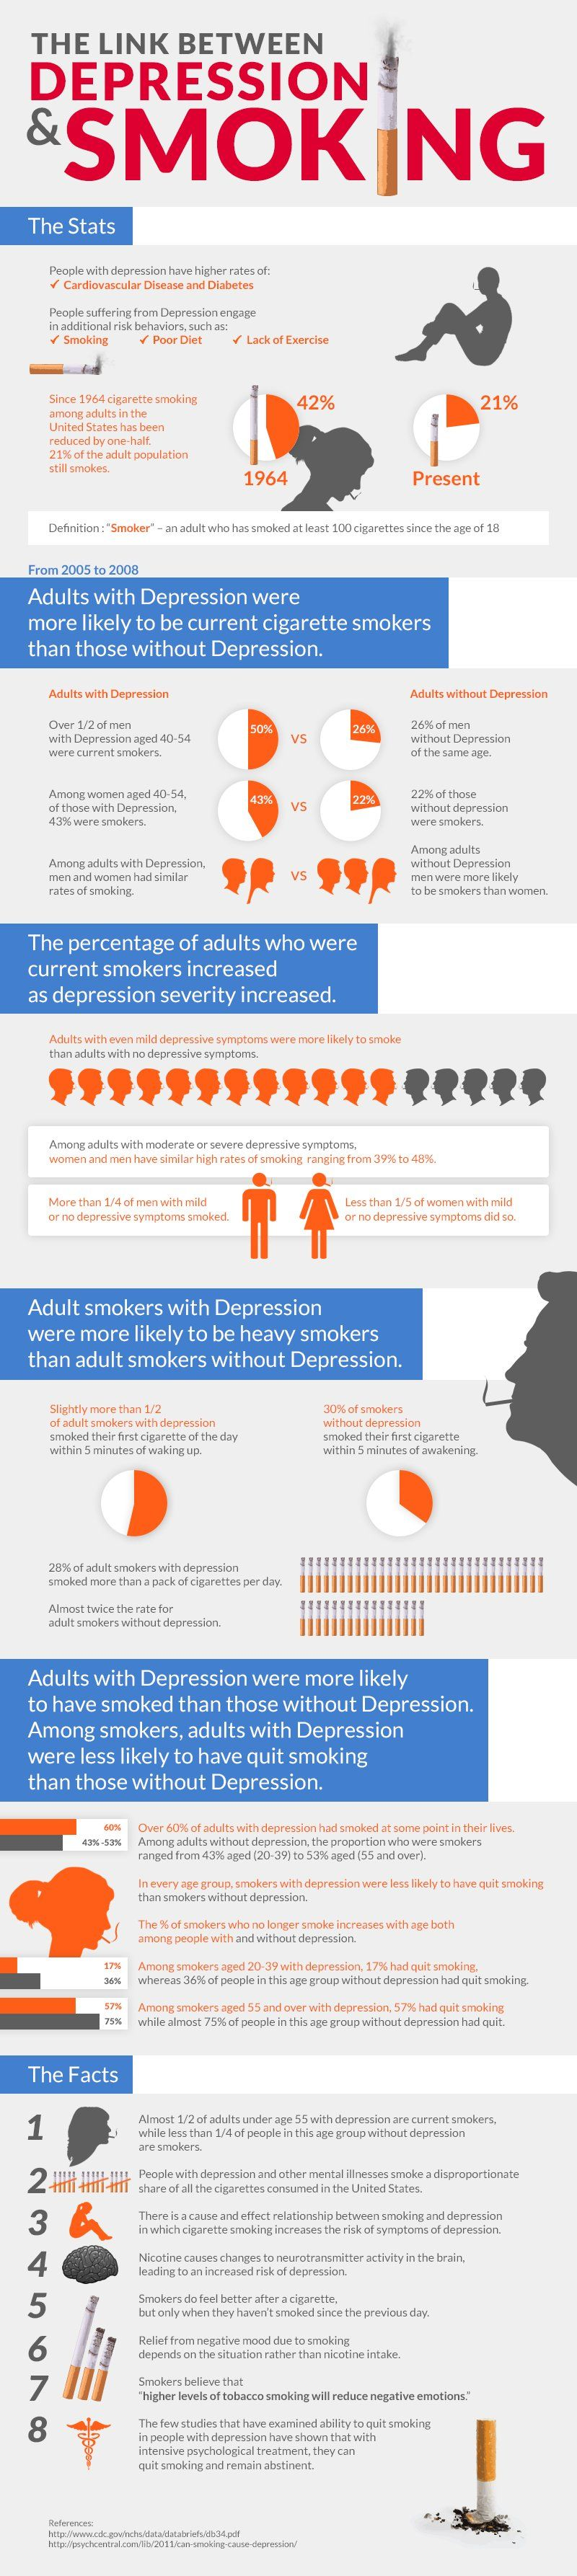 BAD/NASTY/MOST INTRUSIVE ON OTHERS HABIT!!!!!!! The Link Between Smoking and Depression Infographic